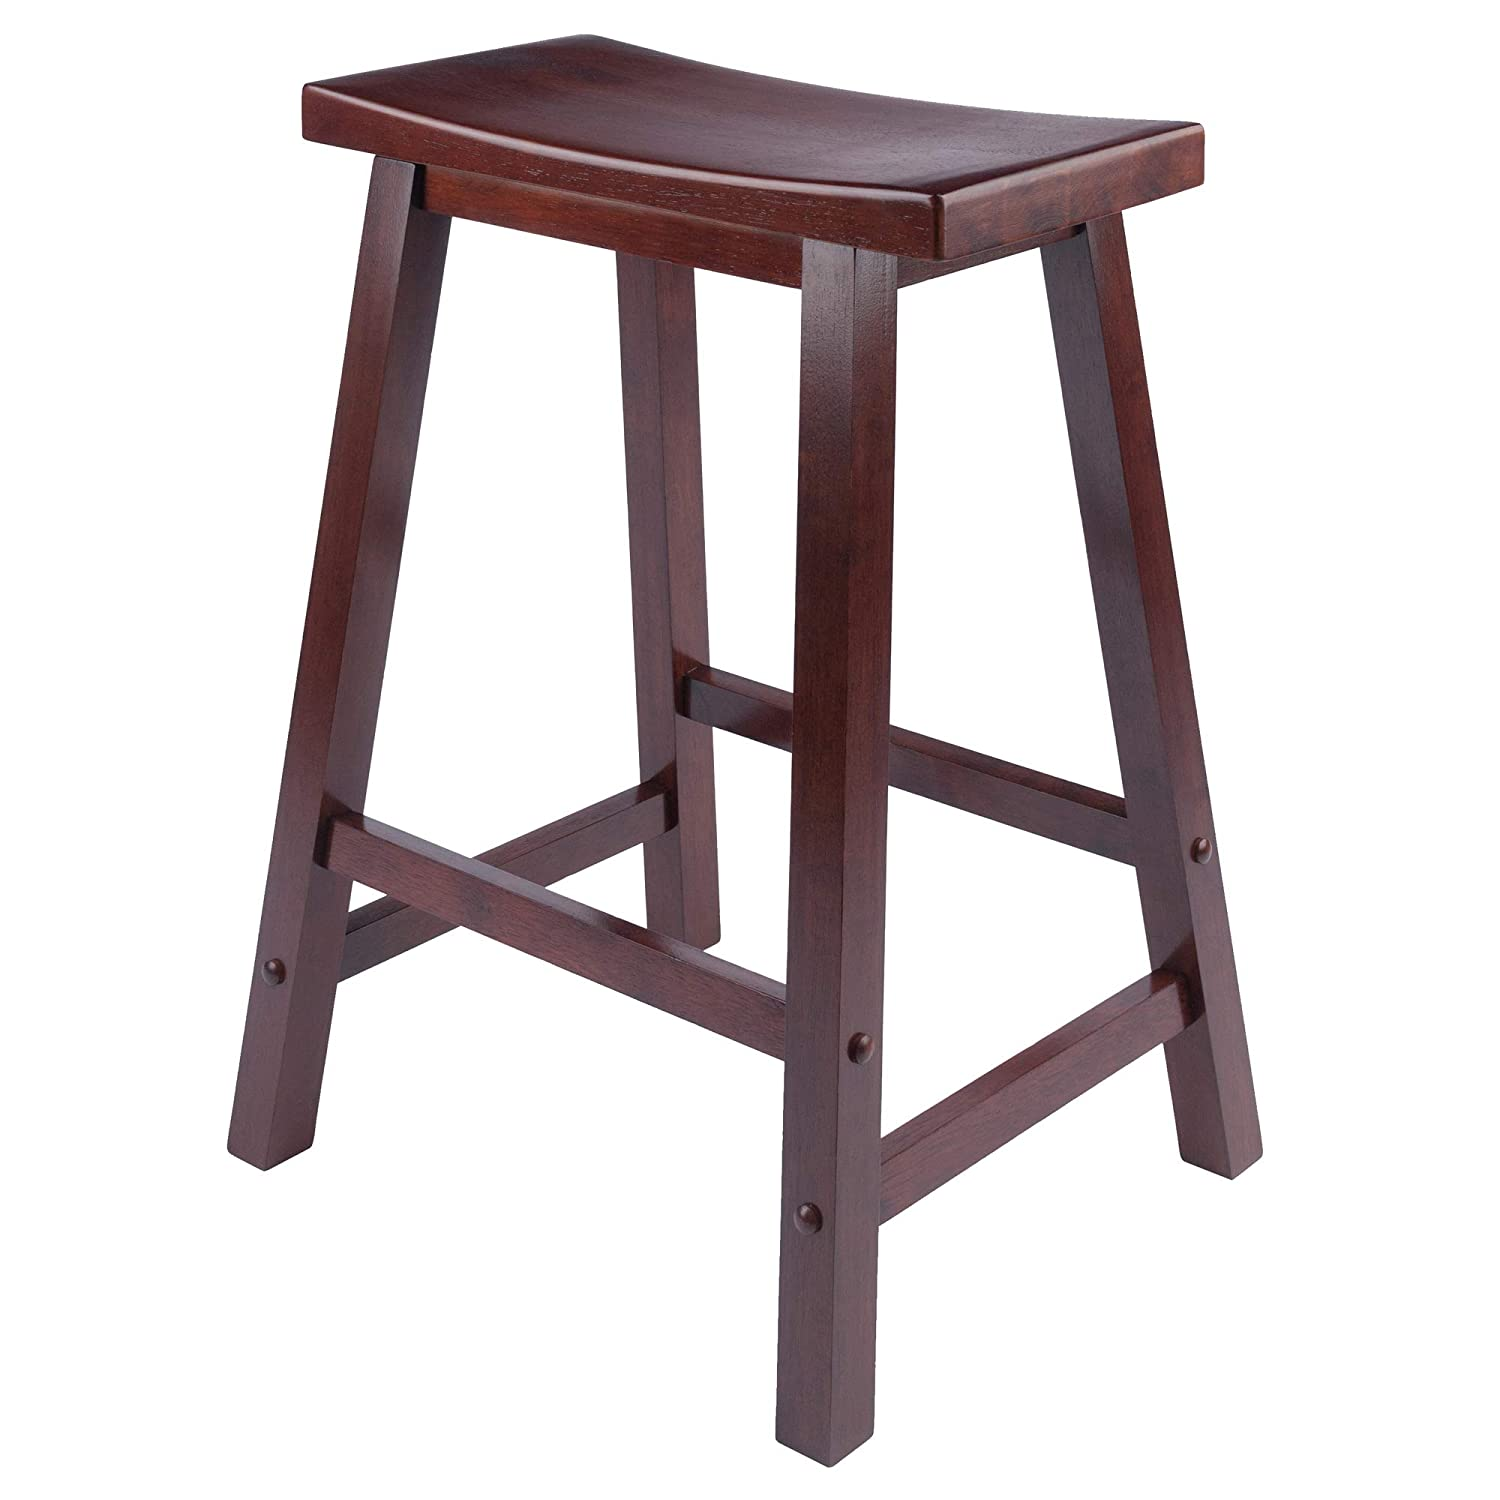 Miraculous 12 Best Bar Stools To Buy In 2019 Top Rated Stools For Uwap Interior Chair Design Uwaporg